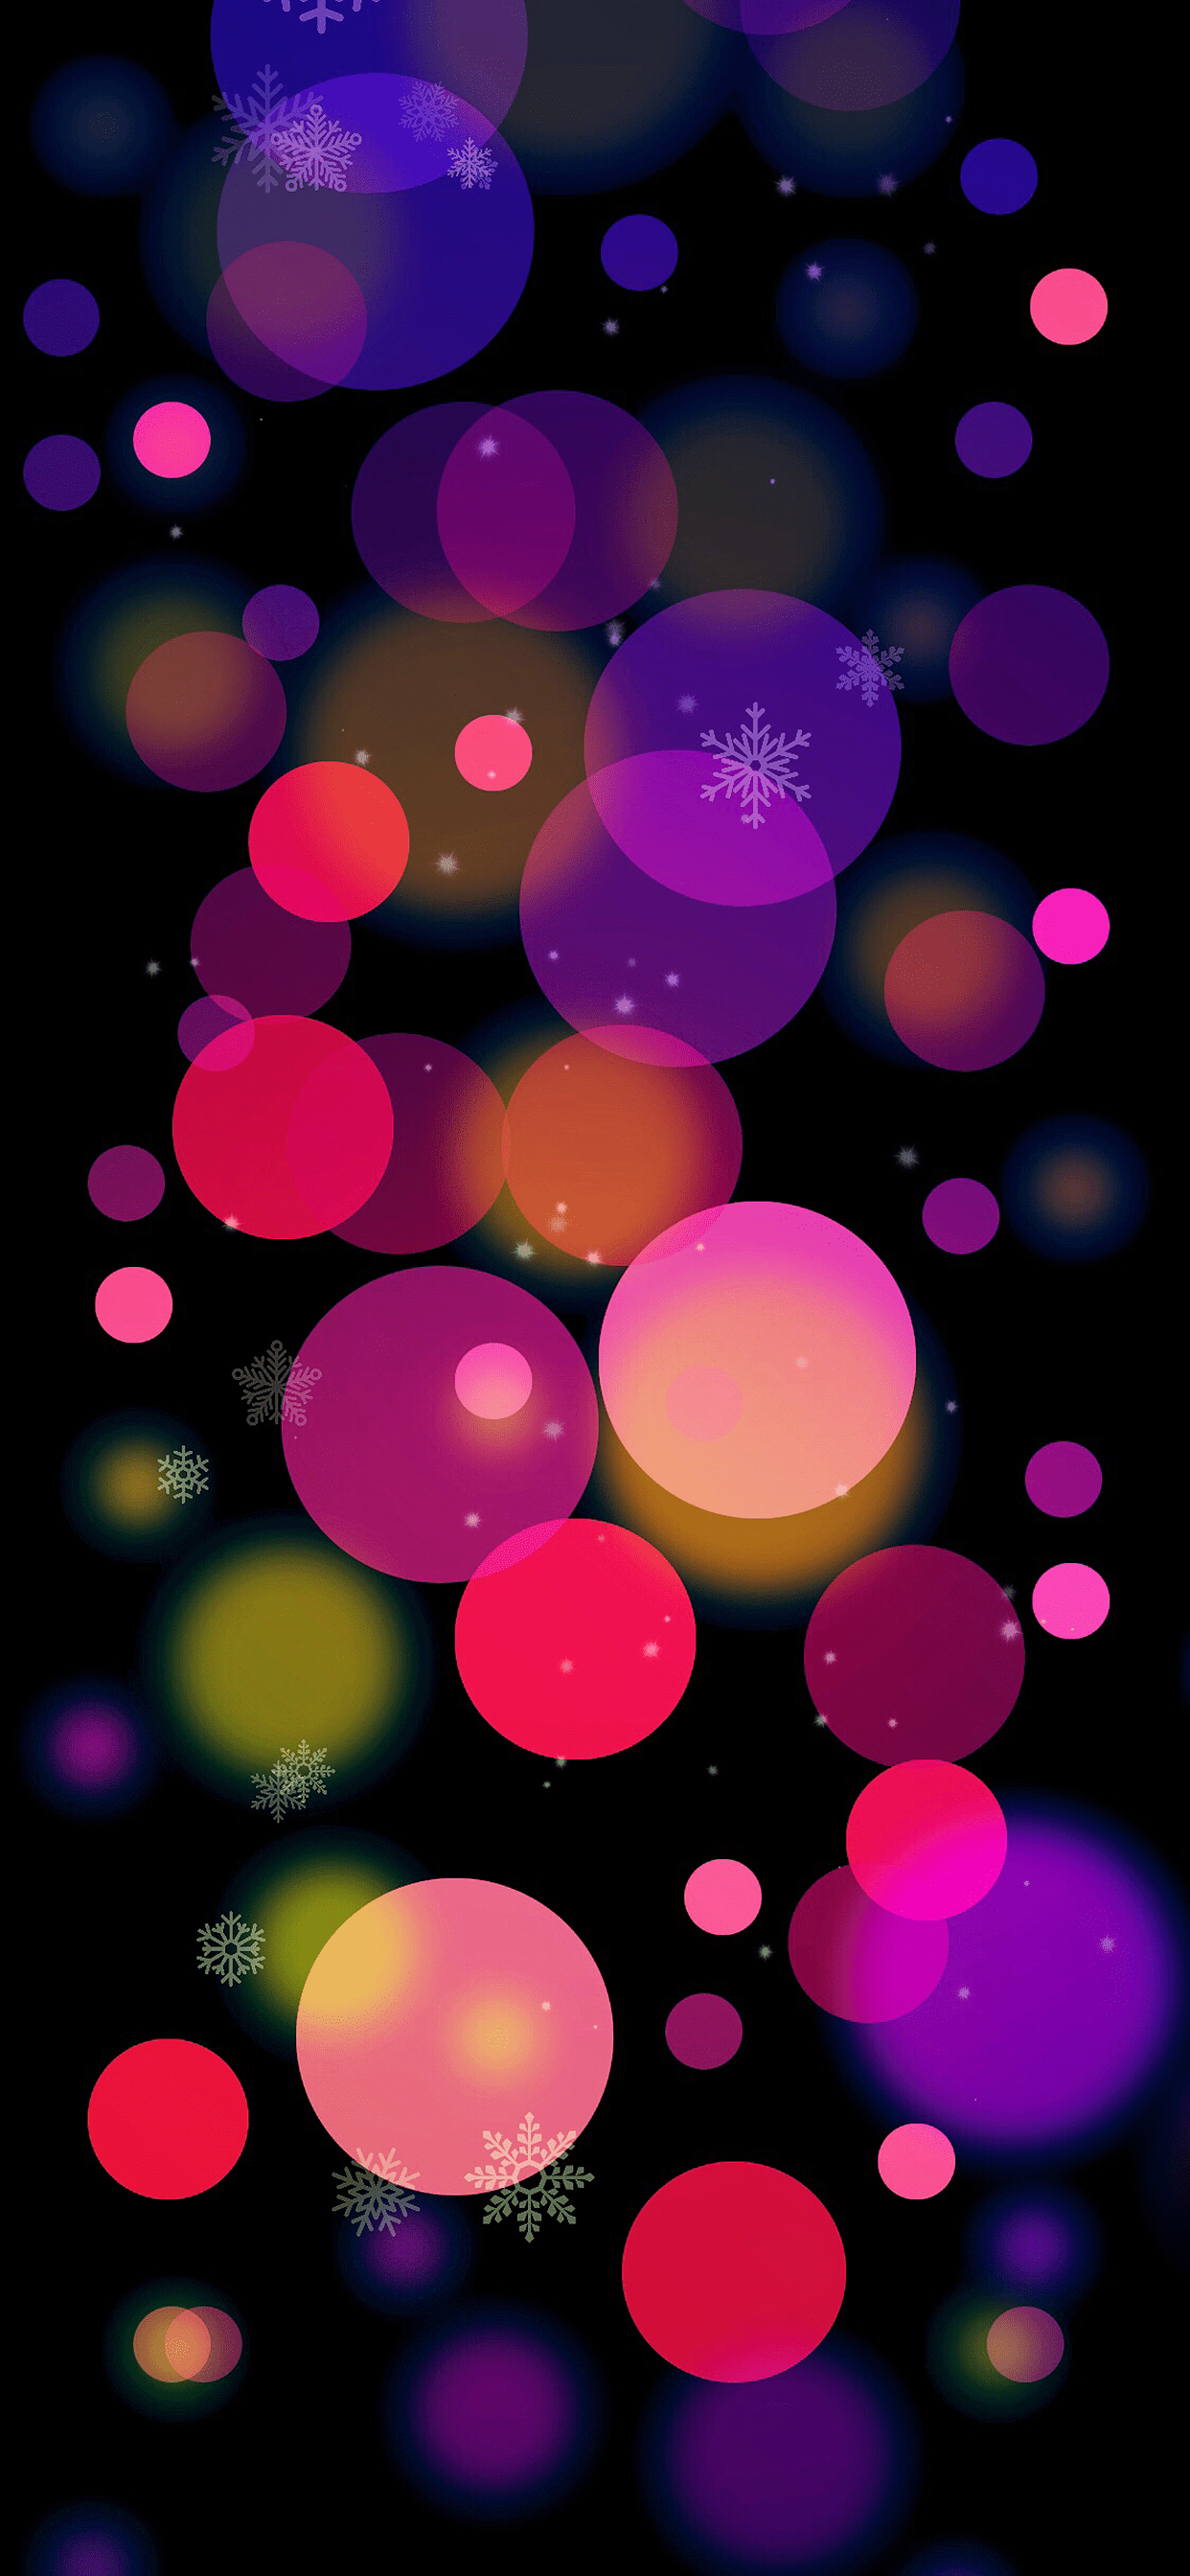 iPhone wallpaper christmas colors balls Christmas